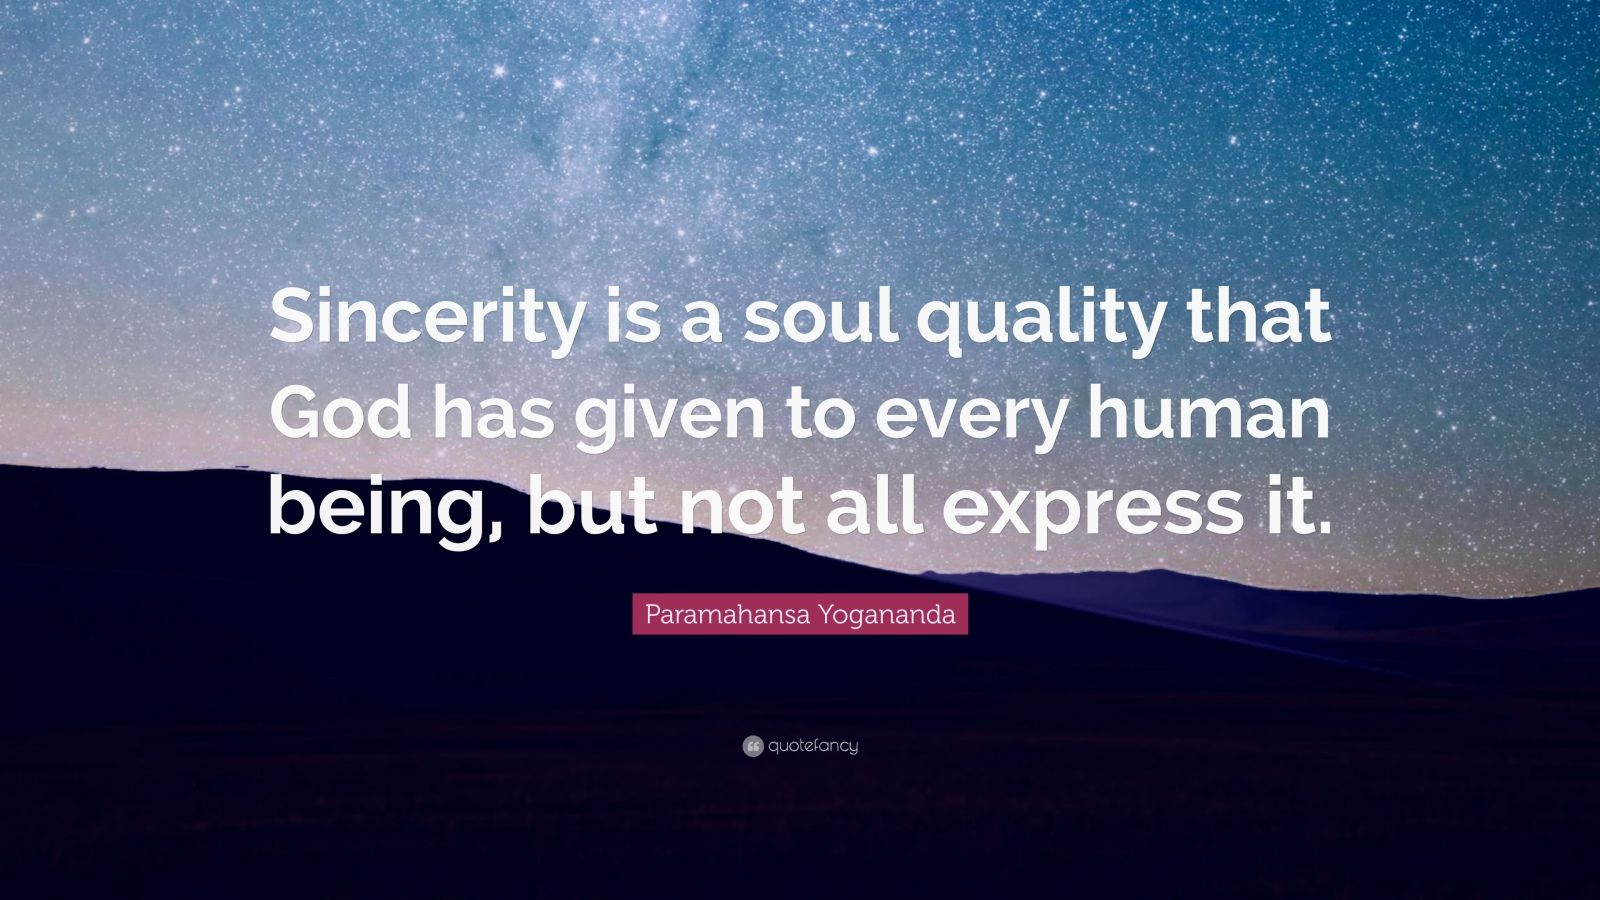 """Paramahansa Yogananda Quote: """"Sincerity is a soul quality that God has given to every human being, but not all express it."""""""